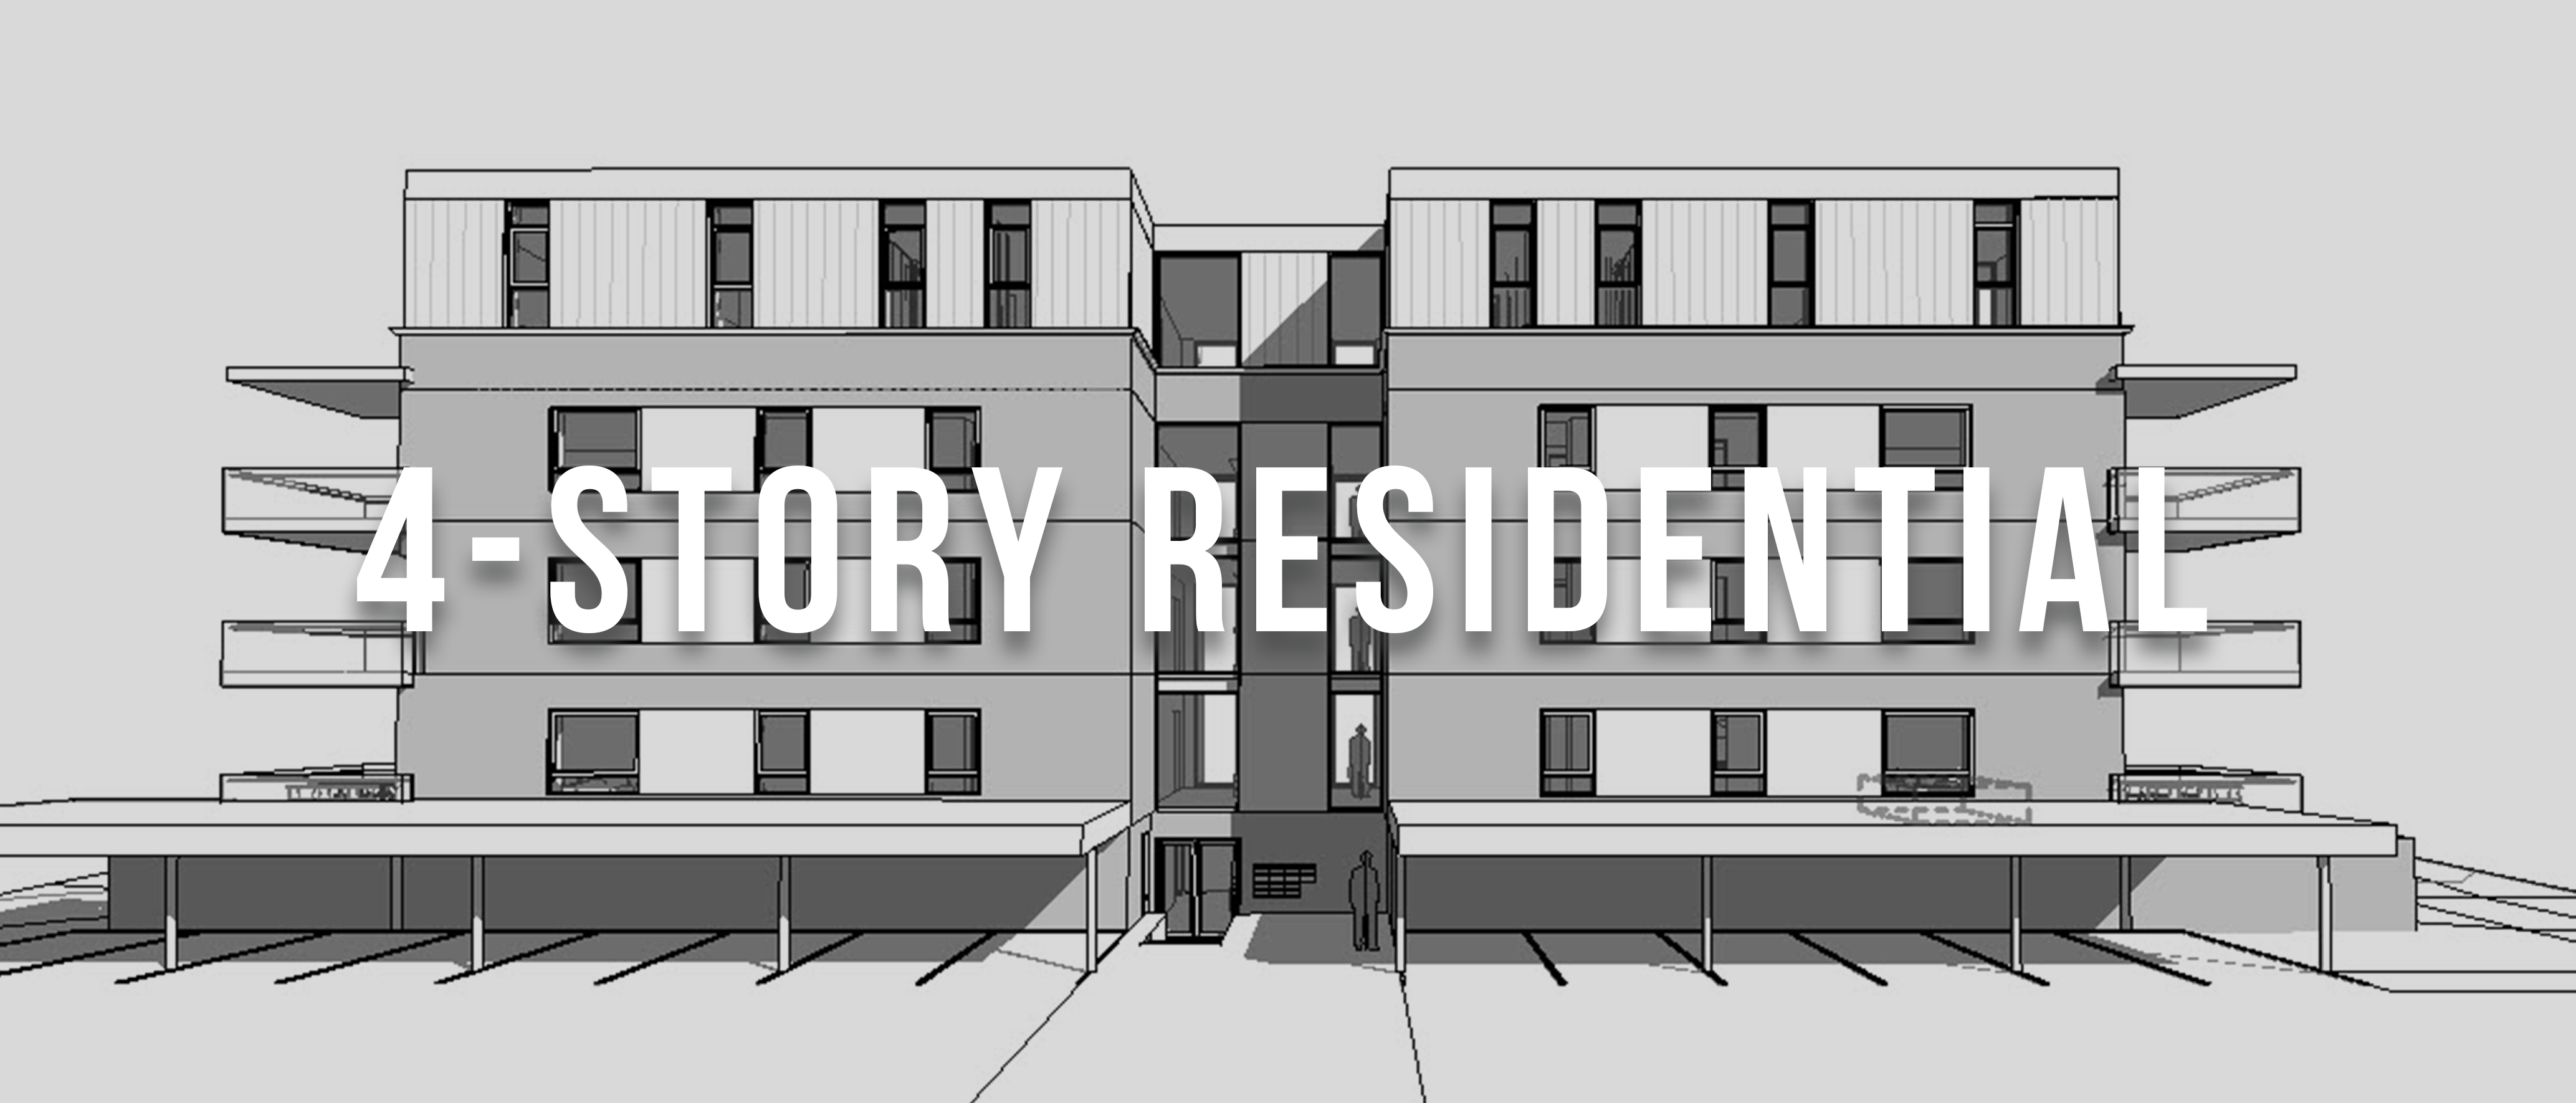 Multy-storey residential. Architectural drawings demo-package